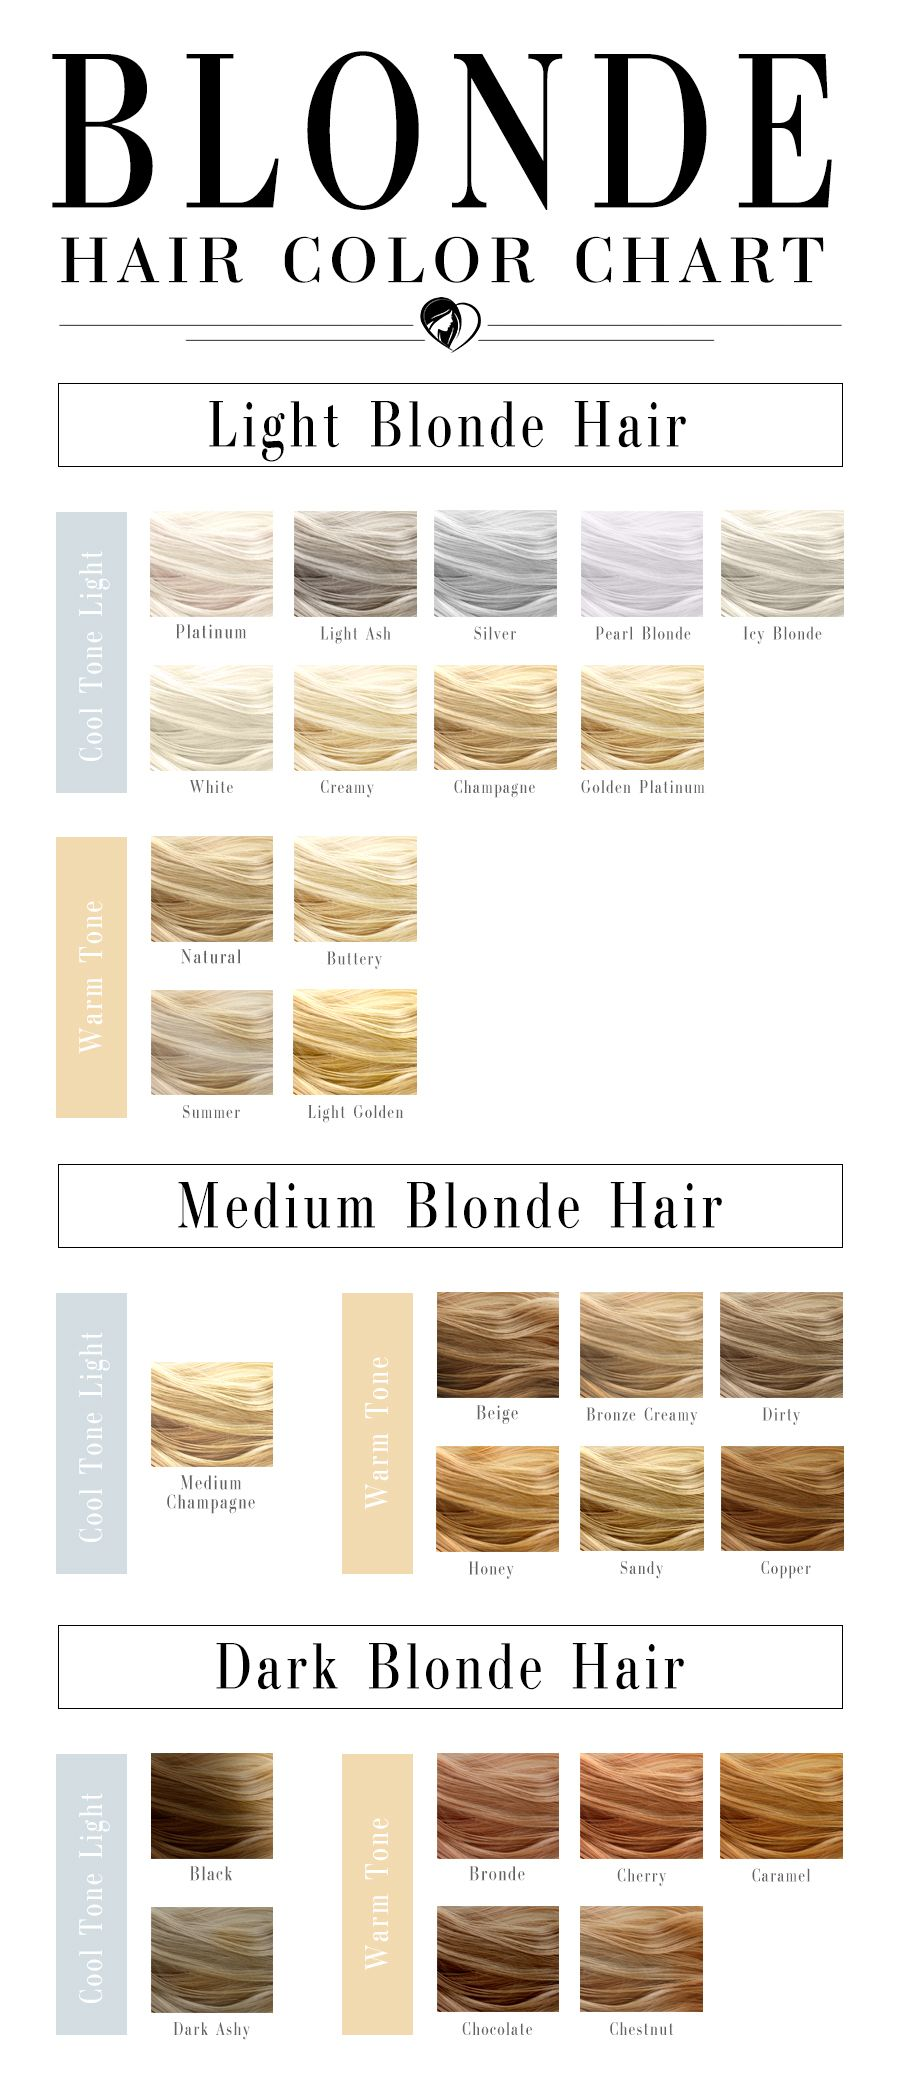 Blonde Hair Color Chart To Find The Right Shade For You Blonde